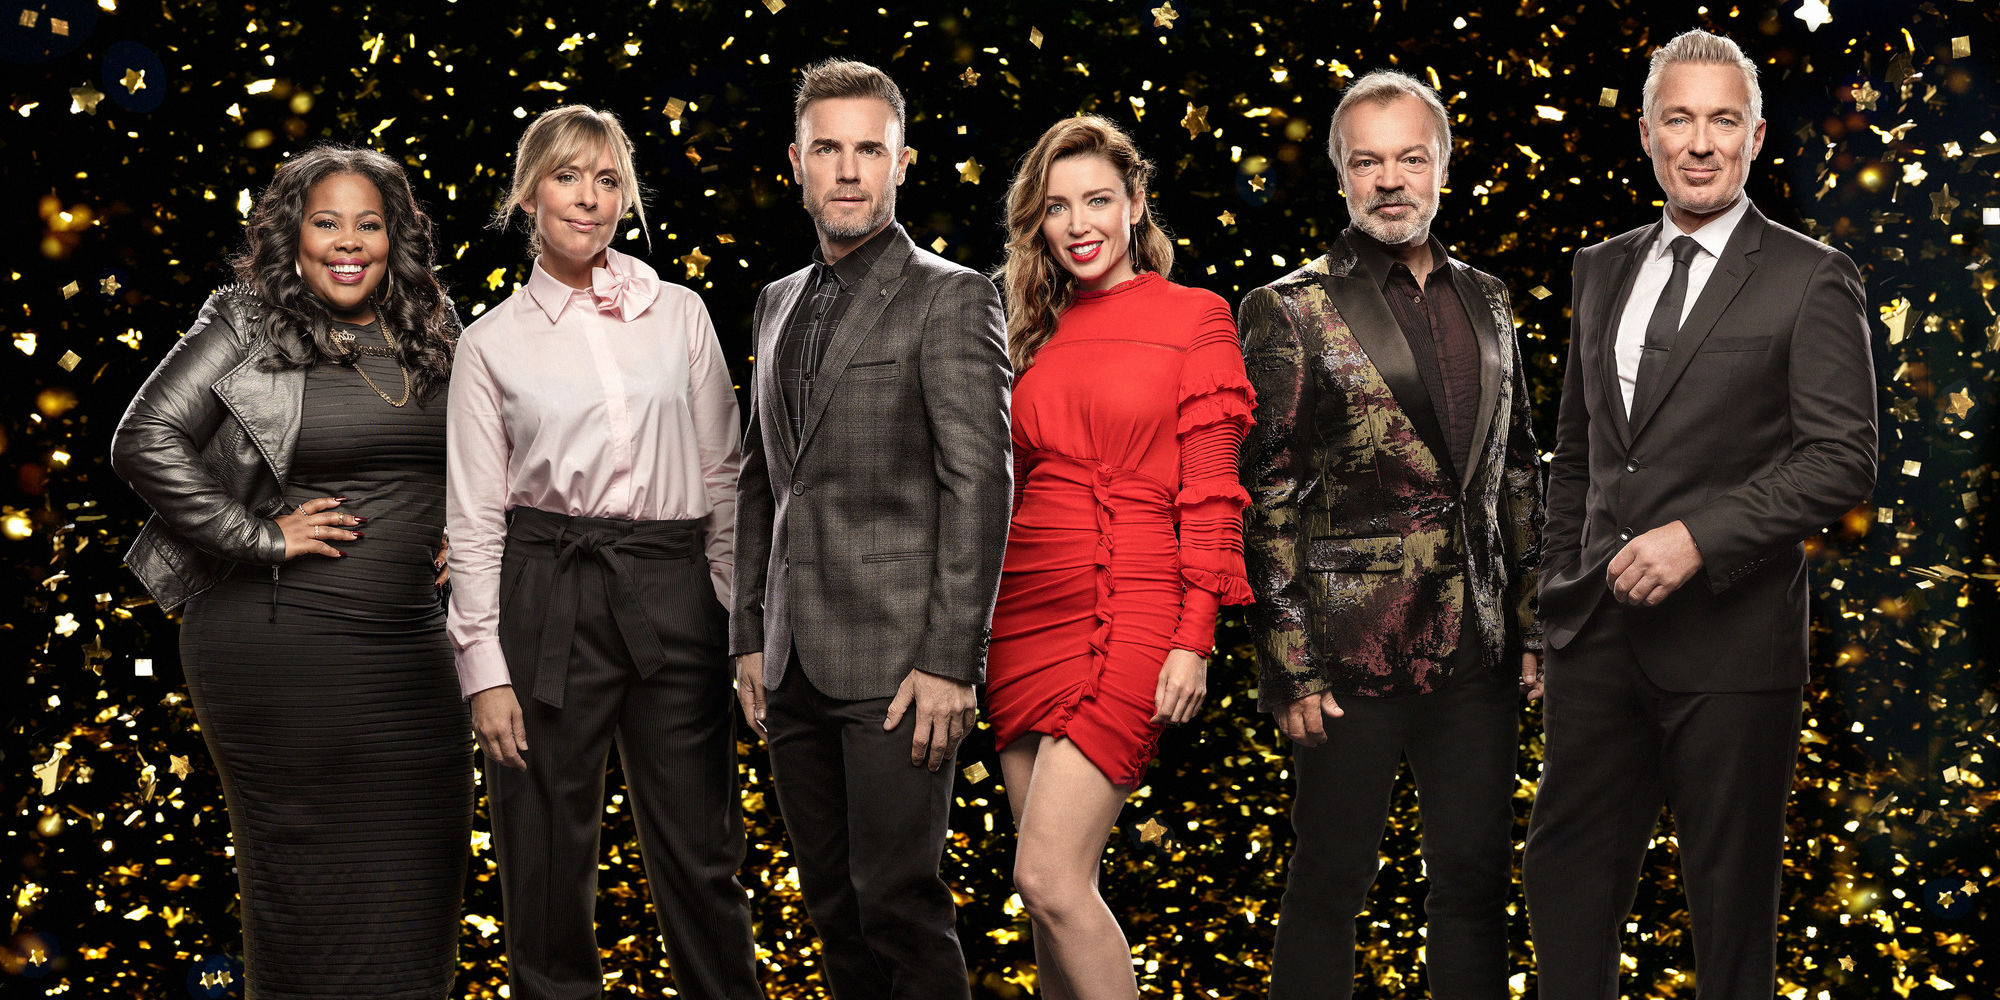 Cleaning ladies mrs overall on the graham norton show this week and -  Let It Shine Is Looking For Five Young Guys To Be Members Of A Boyband Who Will Be In A Touring Musical Featuring The Songs Of Take That